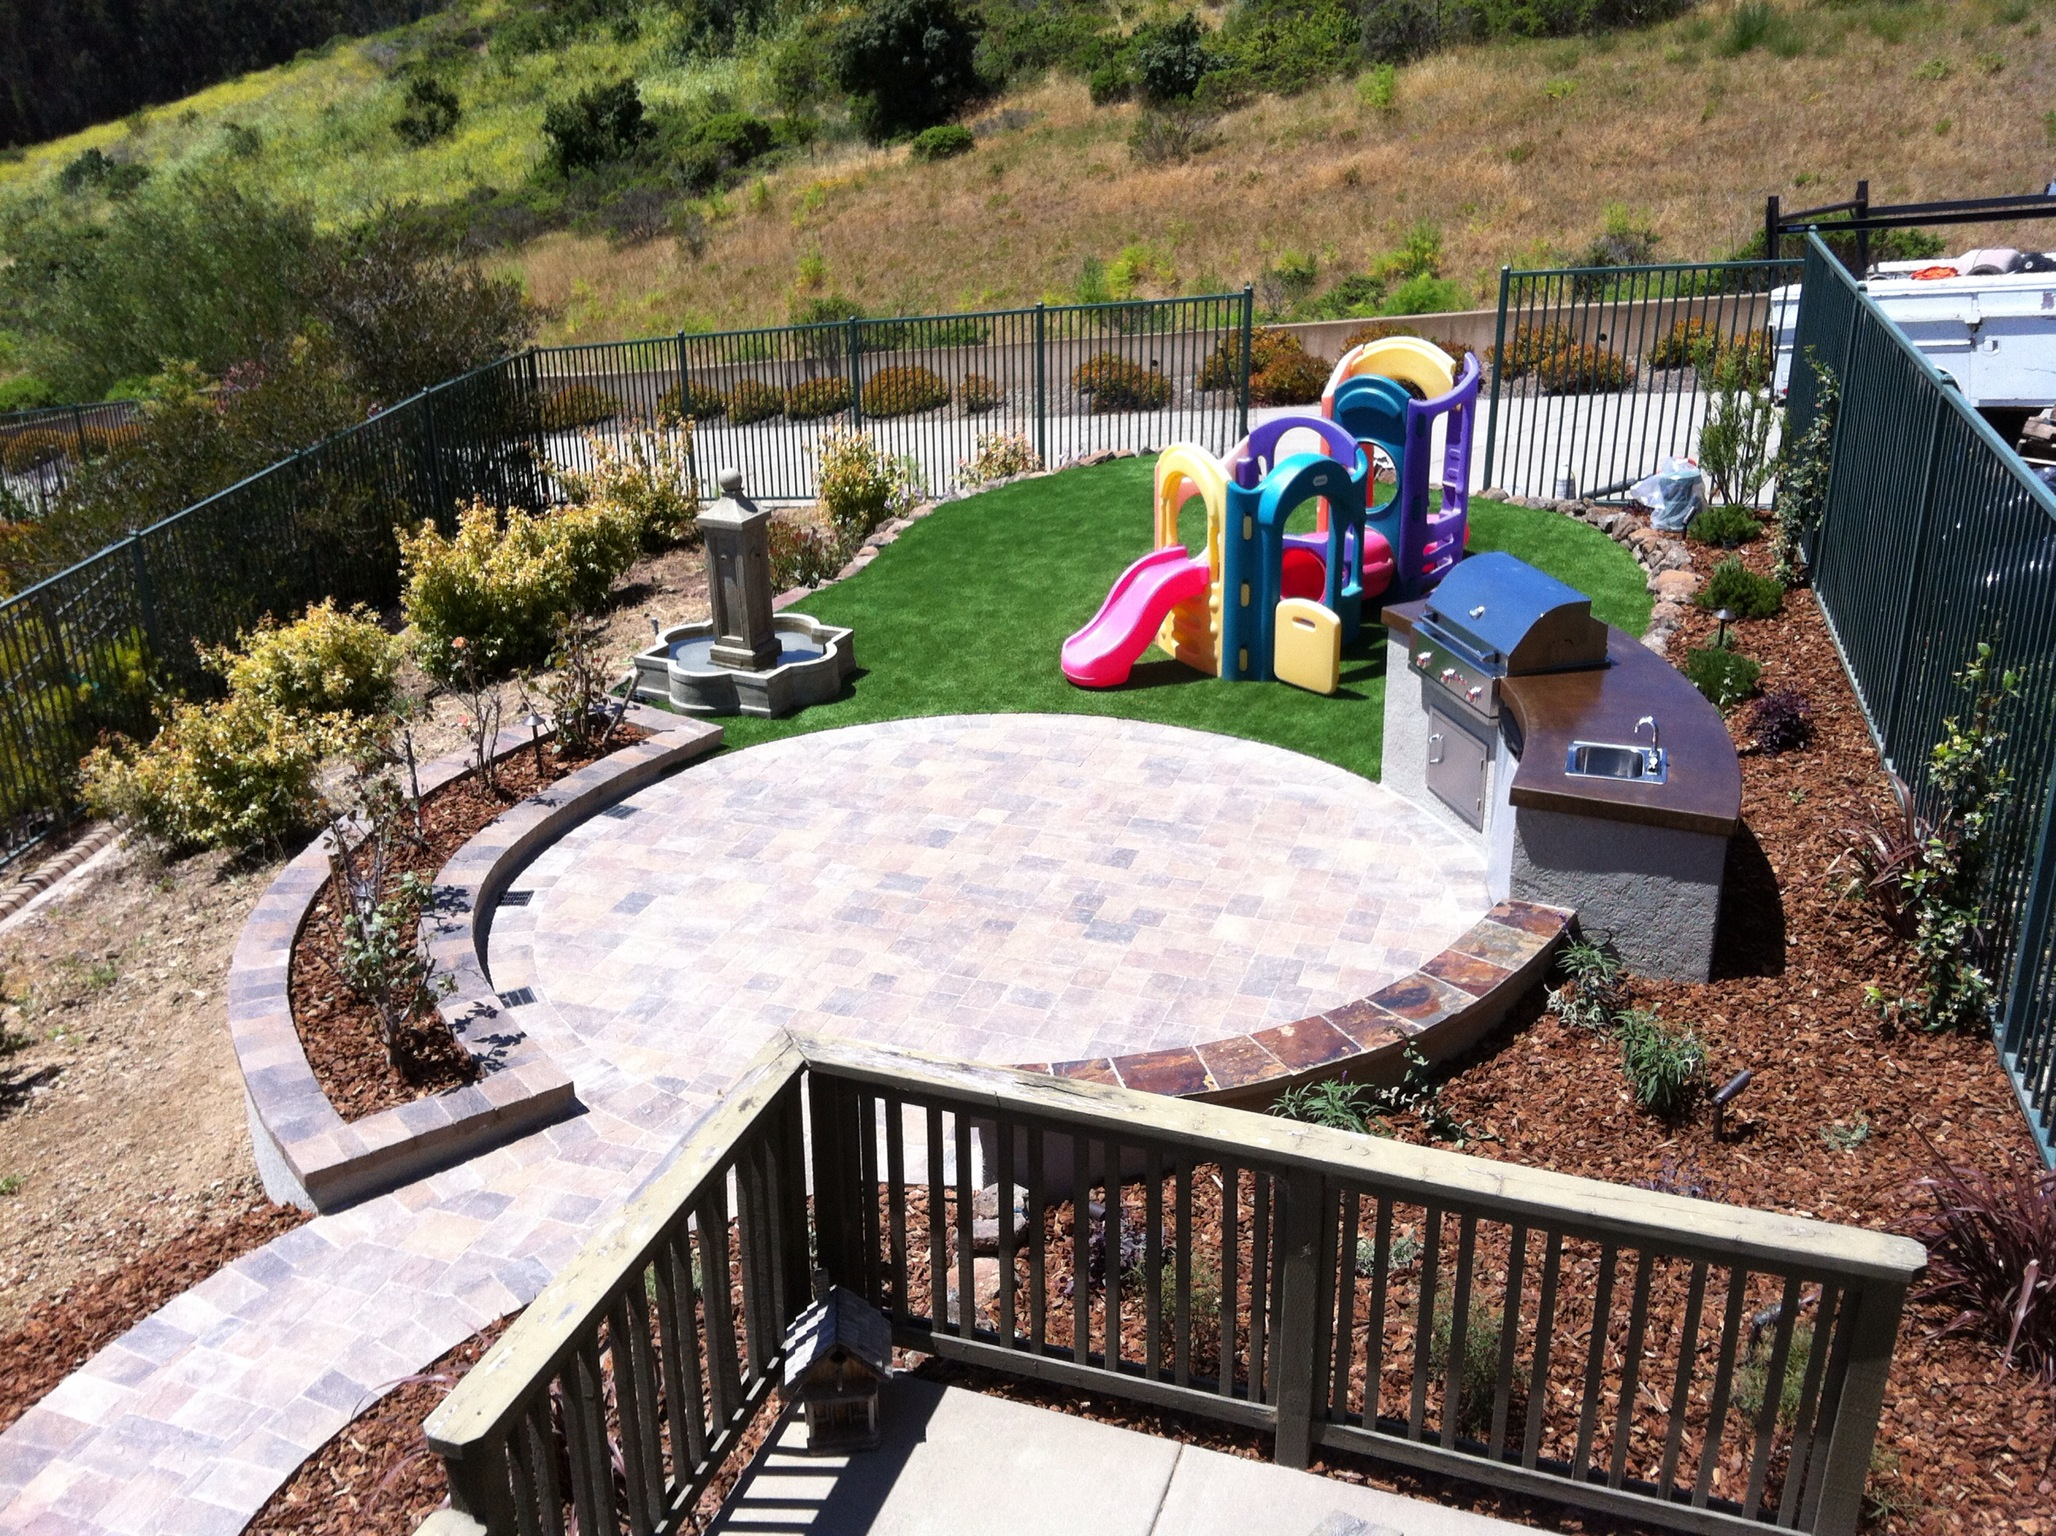 Family Friendly Backyard, Brisbane, CA-DPG.Design-paver-patio-and-pathway-outdoor-kitchen-synthetic